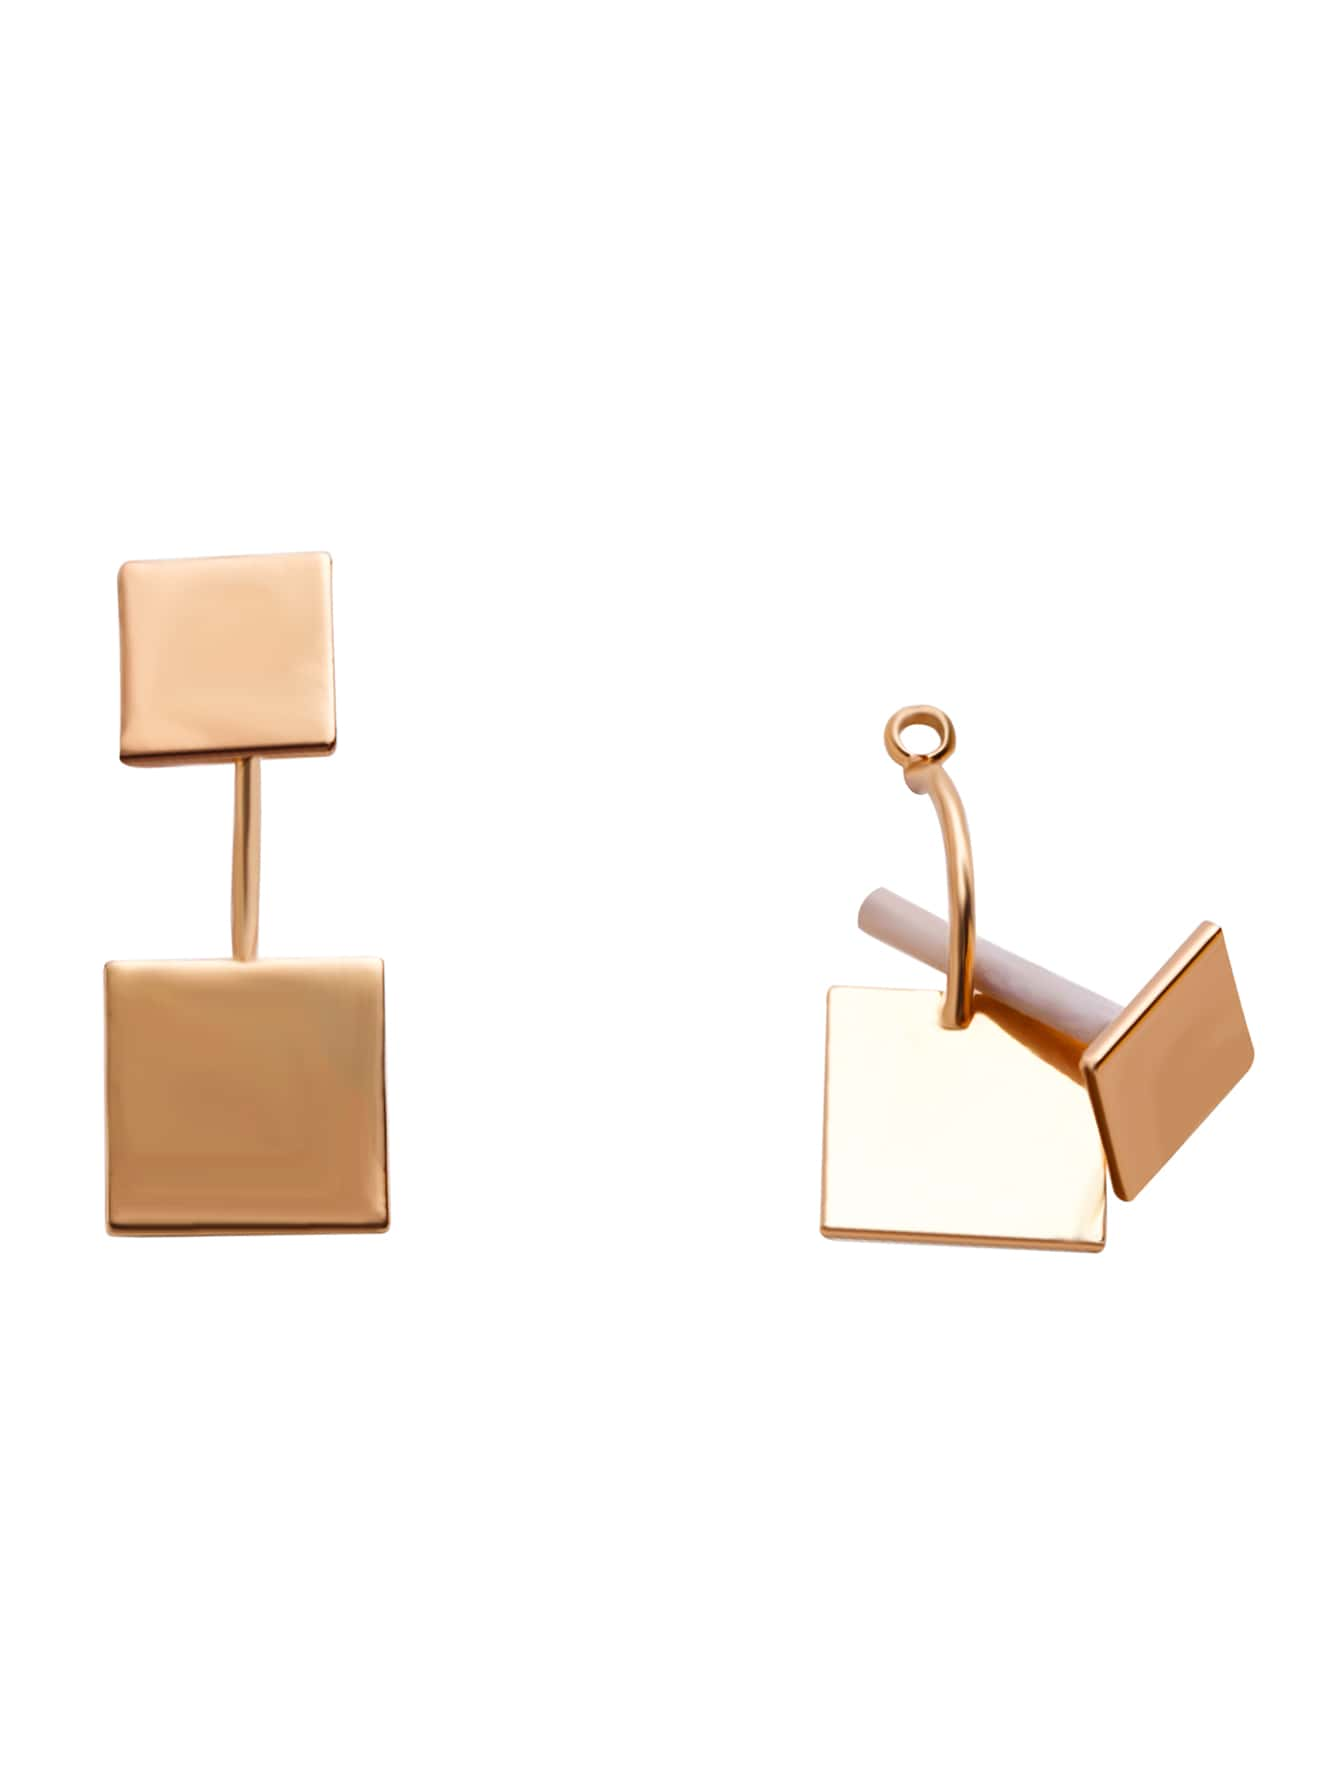 Gold Plated Square Stud EarringsGold Plated Square Stud Earrings<br><br>color: Gold<br>size: None